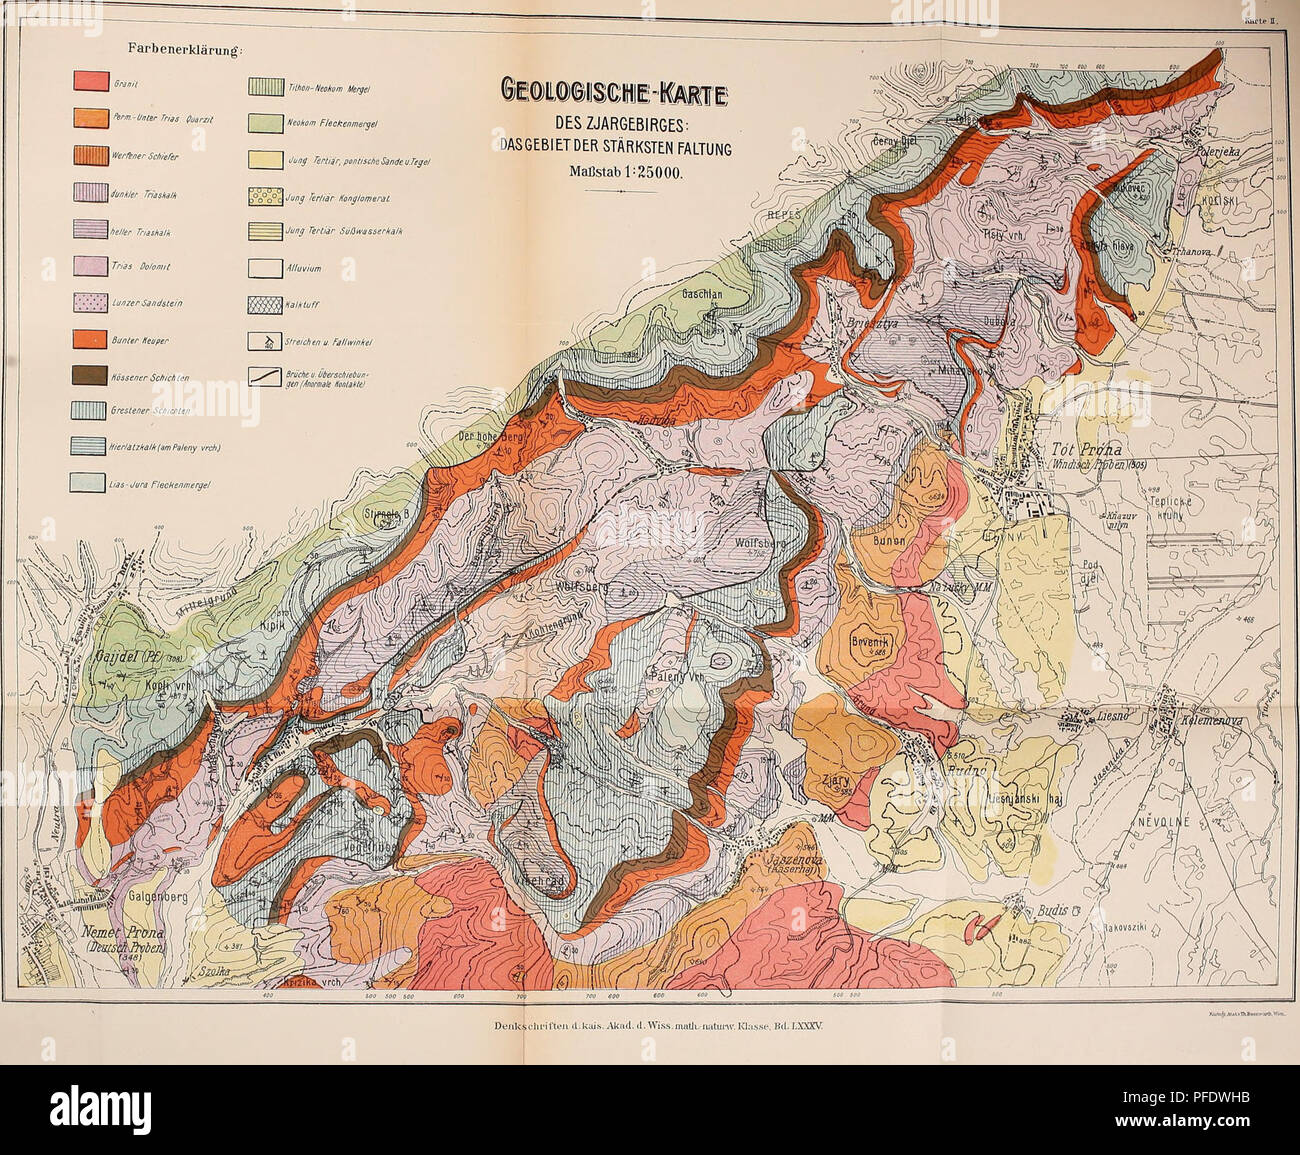 . Denkschriften - Österreichische Akademie der Wissenschaften. Vetters,!!: Geologie des Zjai-g'etiirg-,. Please note that these images are extracted from scanned page images that may have been digitally enhanced for readability - coloration and appearance of these illustrations may not perfectly resemble the original work.. Akademie der Wissenschaften in Wien. Mathematisch-Naturwissenschaftliche Klasse. Wien, New York, Springer - Stock Image